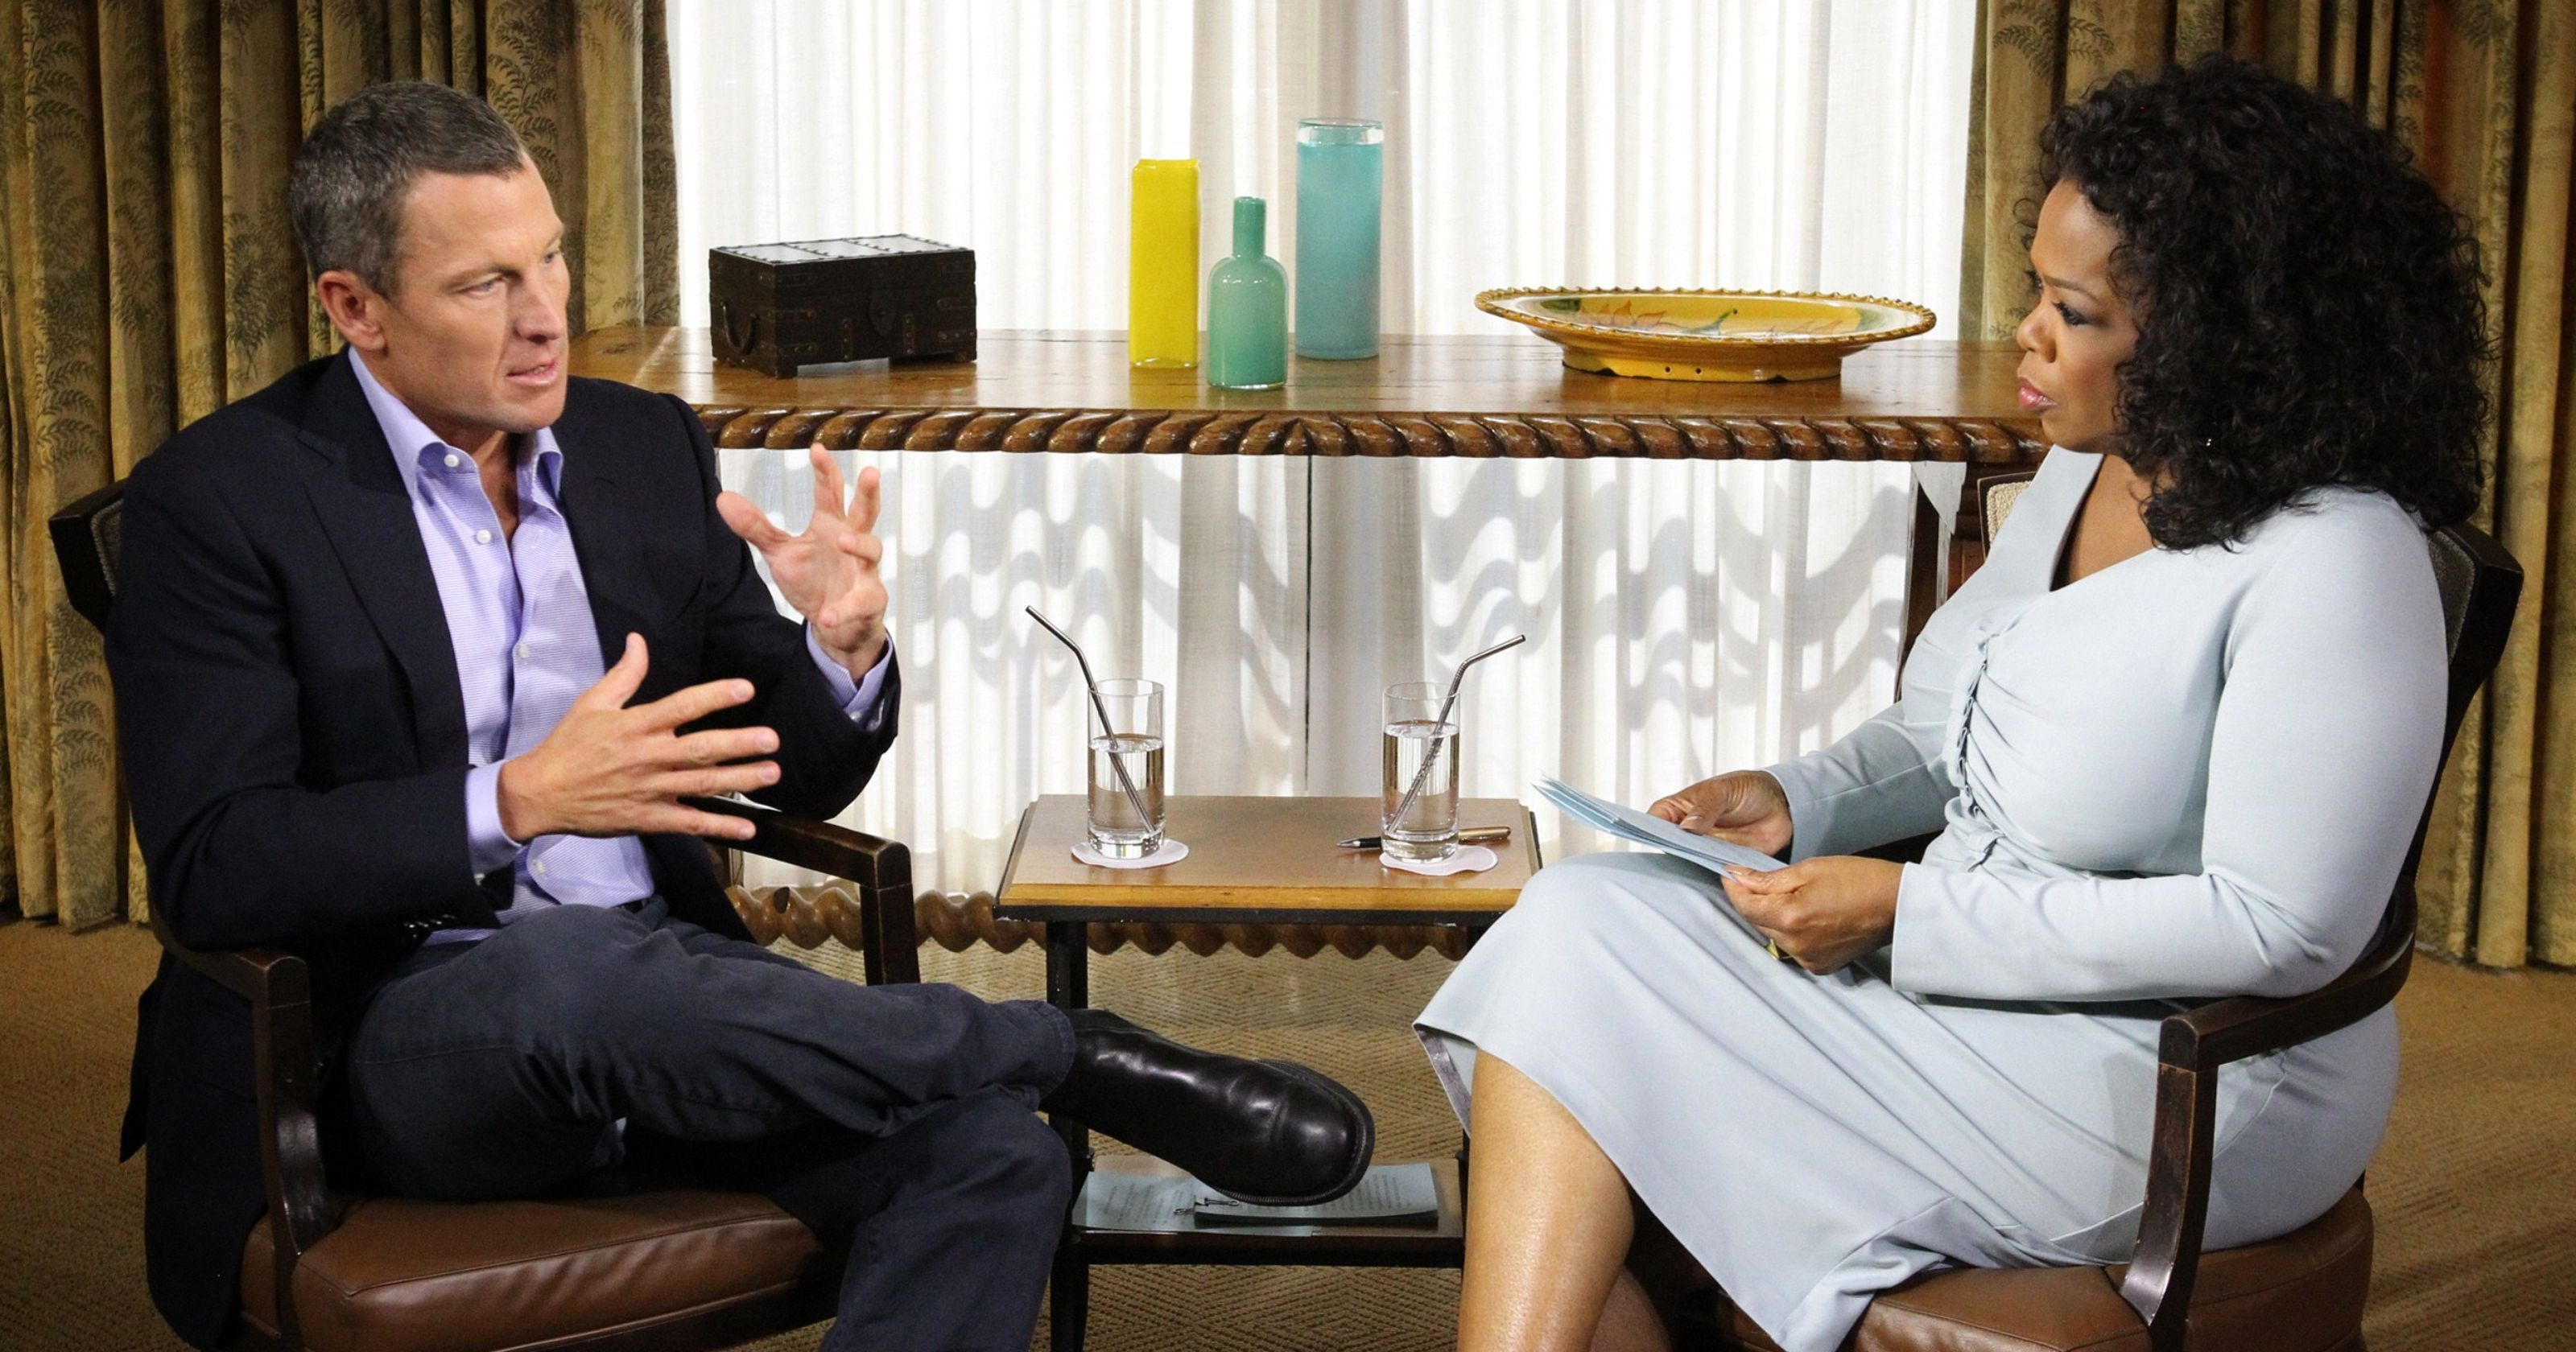 Oprah interviewing Lance Armstrong in 2013